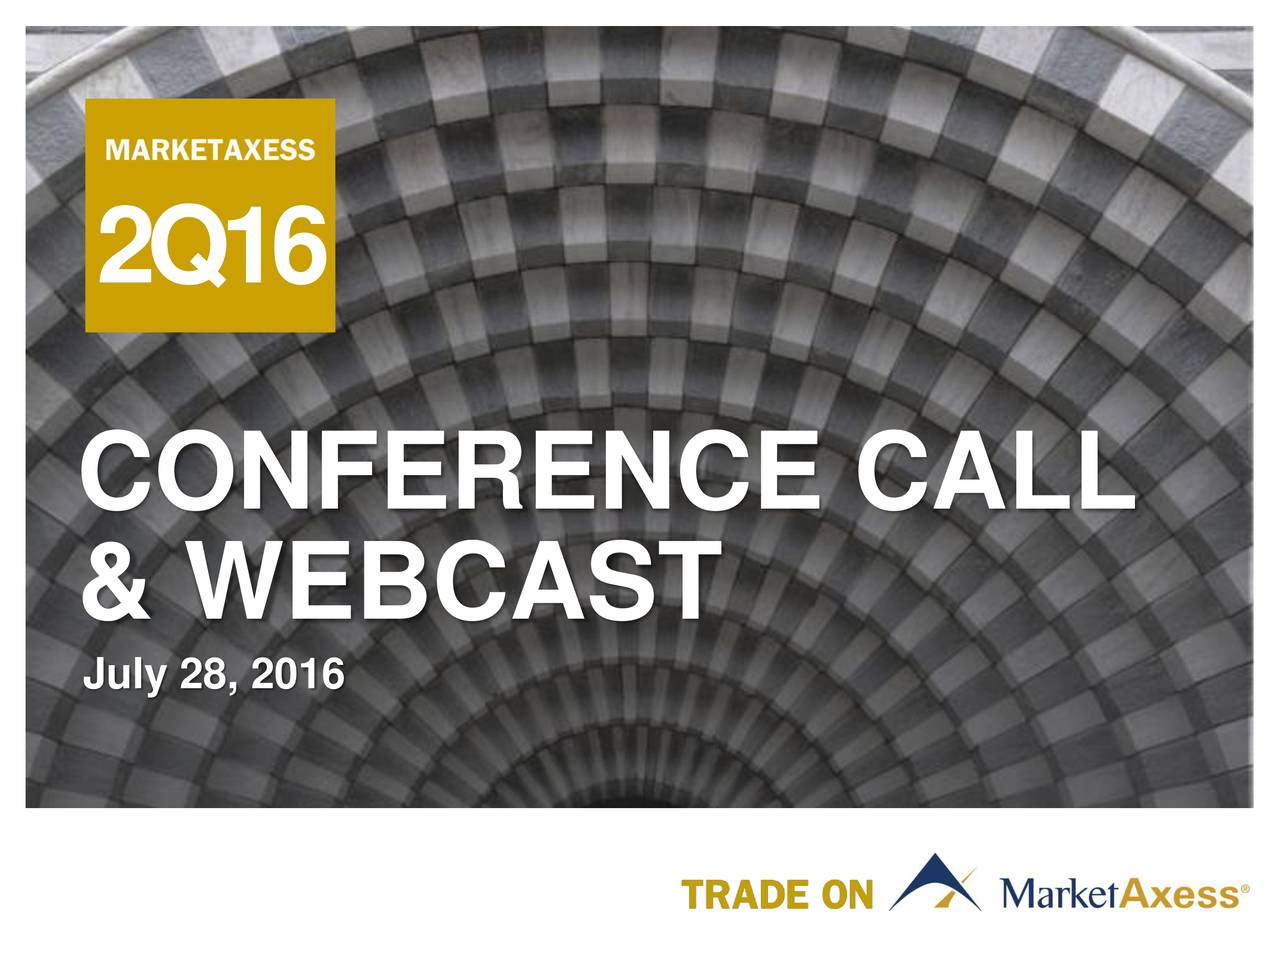 CONFERENCE CALL July 28, 2016